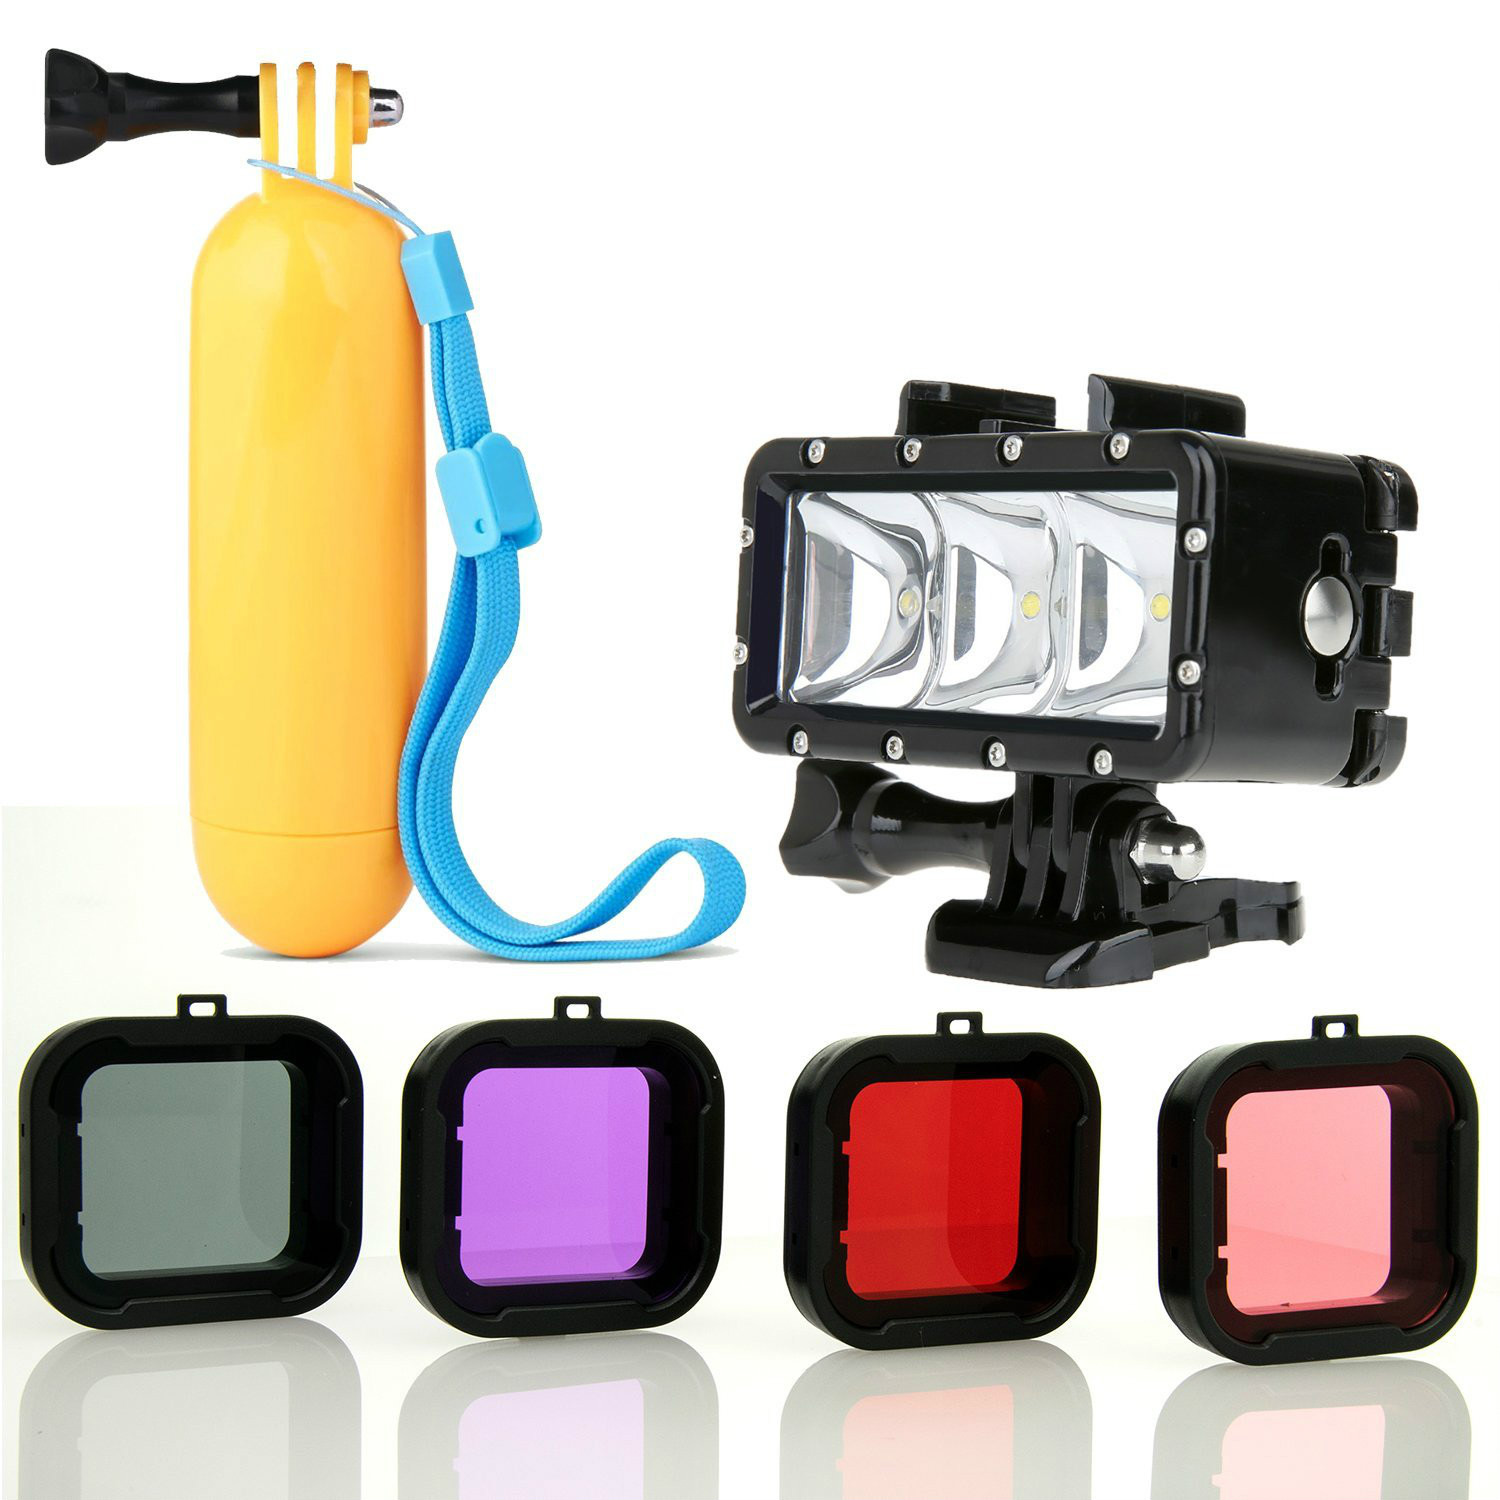 Floating Hand Grip Waterproof LED Flash Light Scuba 4PC Filter For GoPro HERO4 HERO3 Black Silver